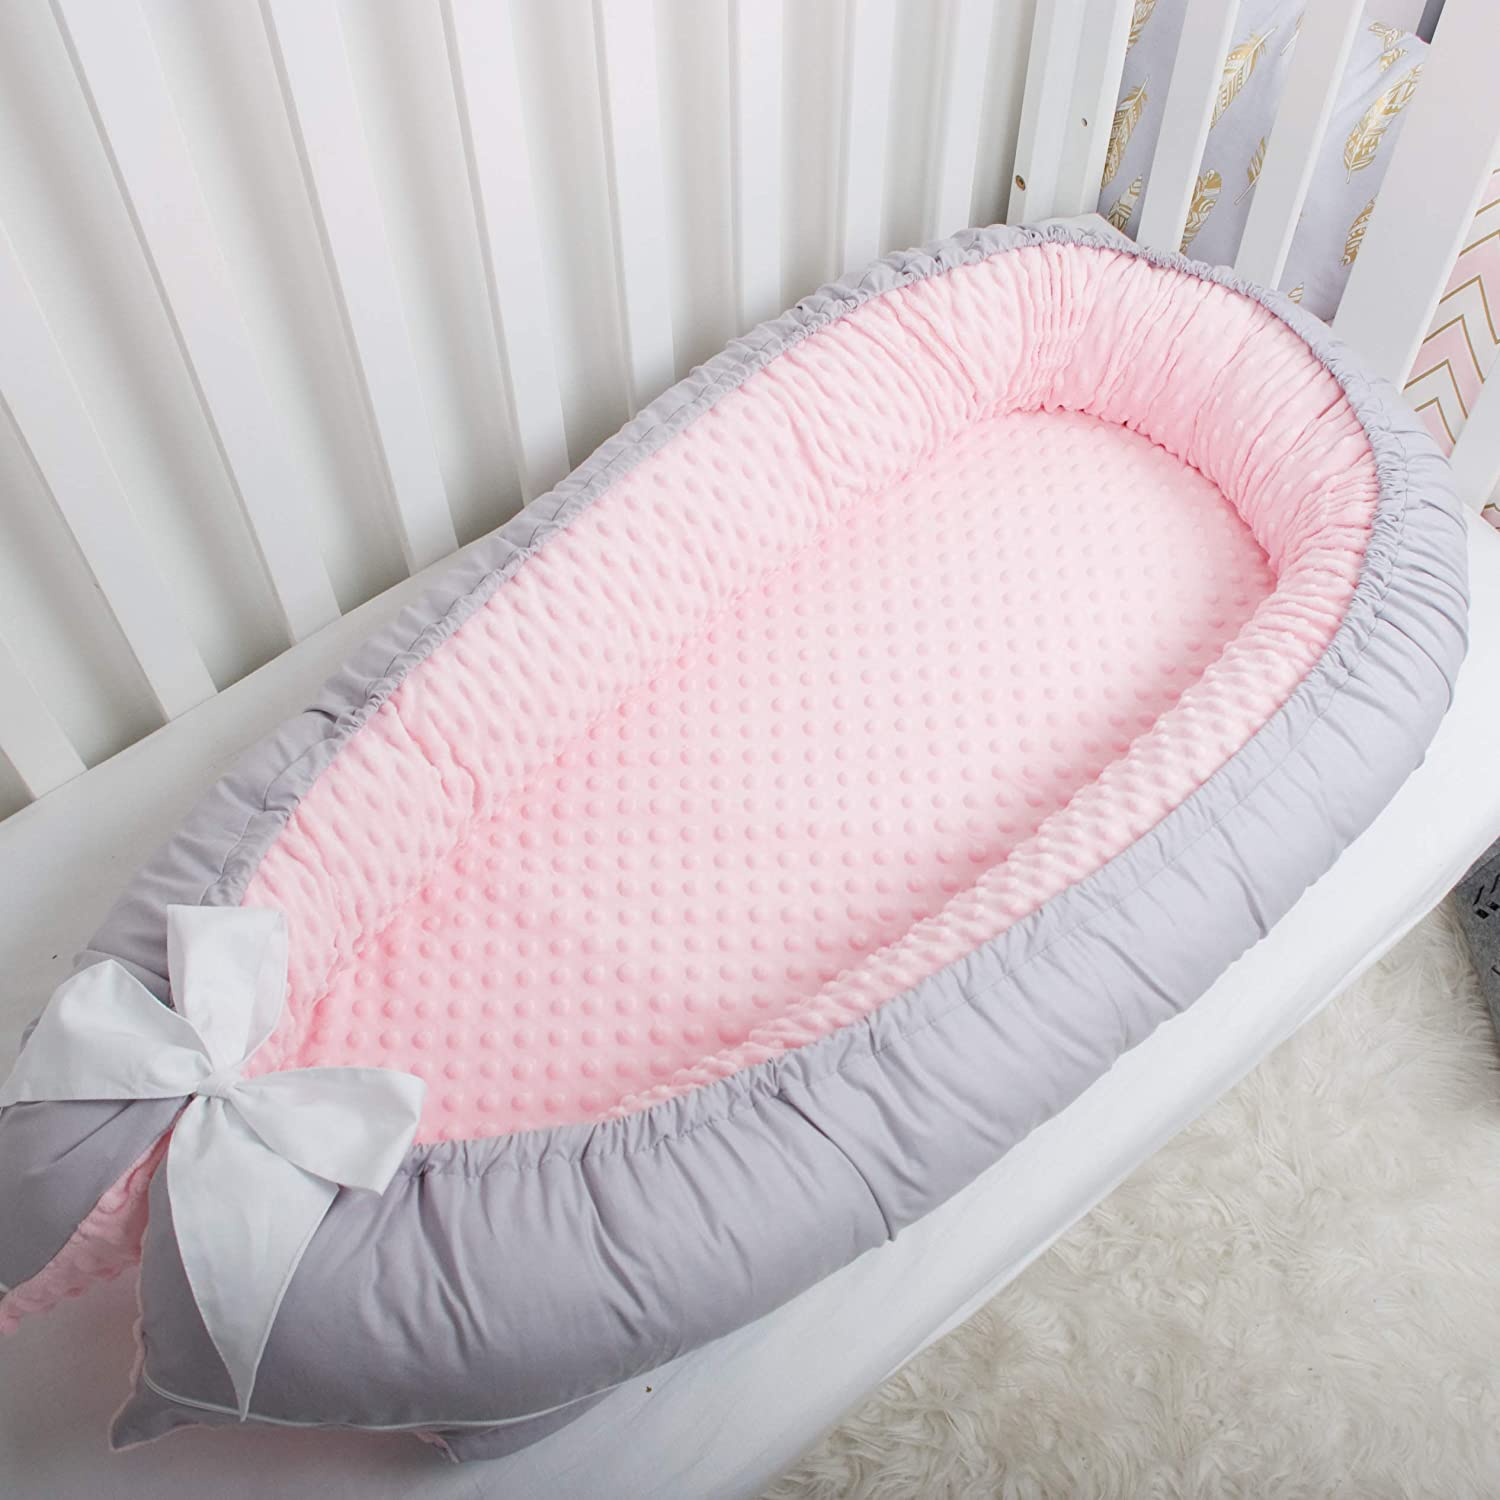 Minky Miami Mall Baby nest bed portable crib bassinet sleep baby lounger co Free shipping / New